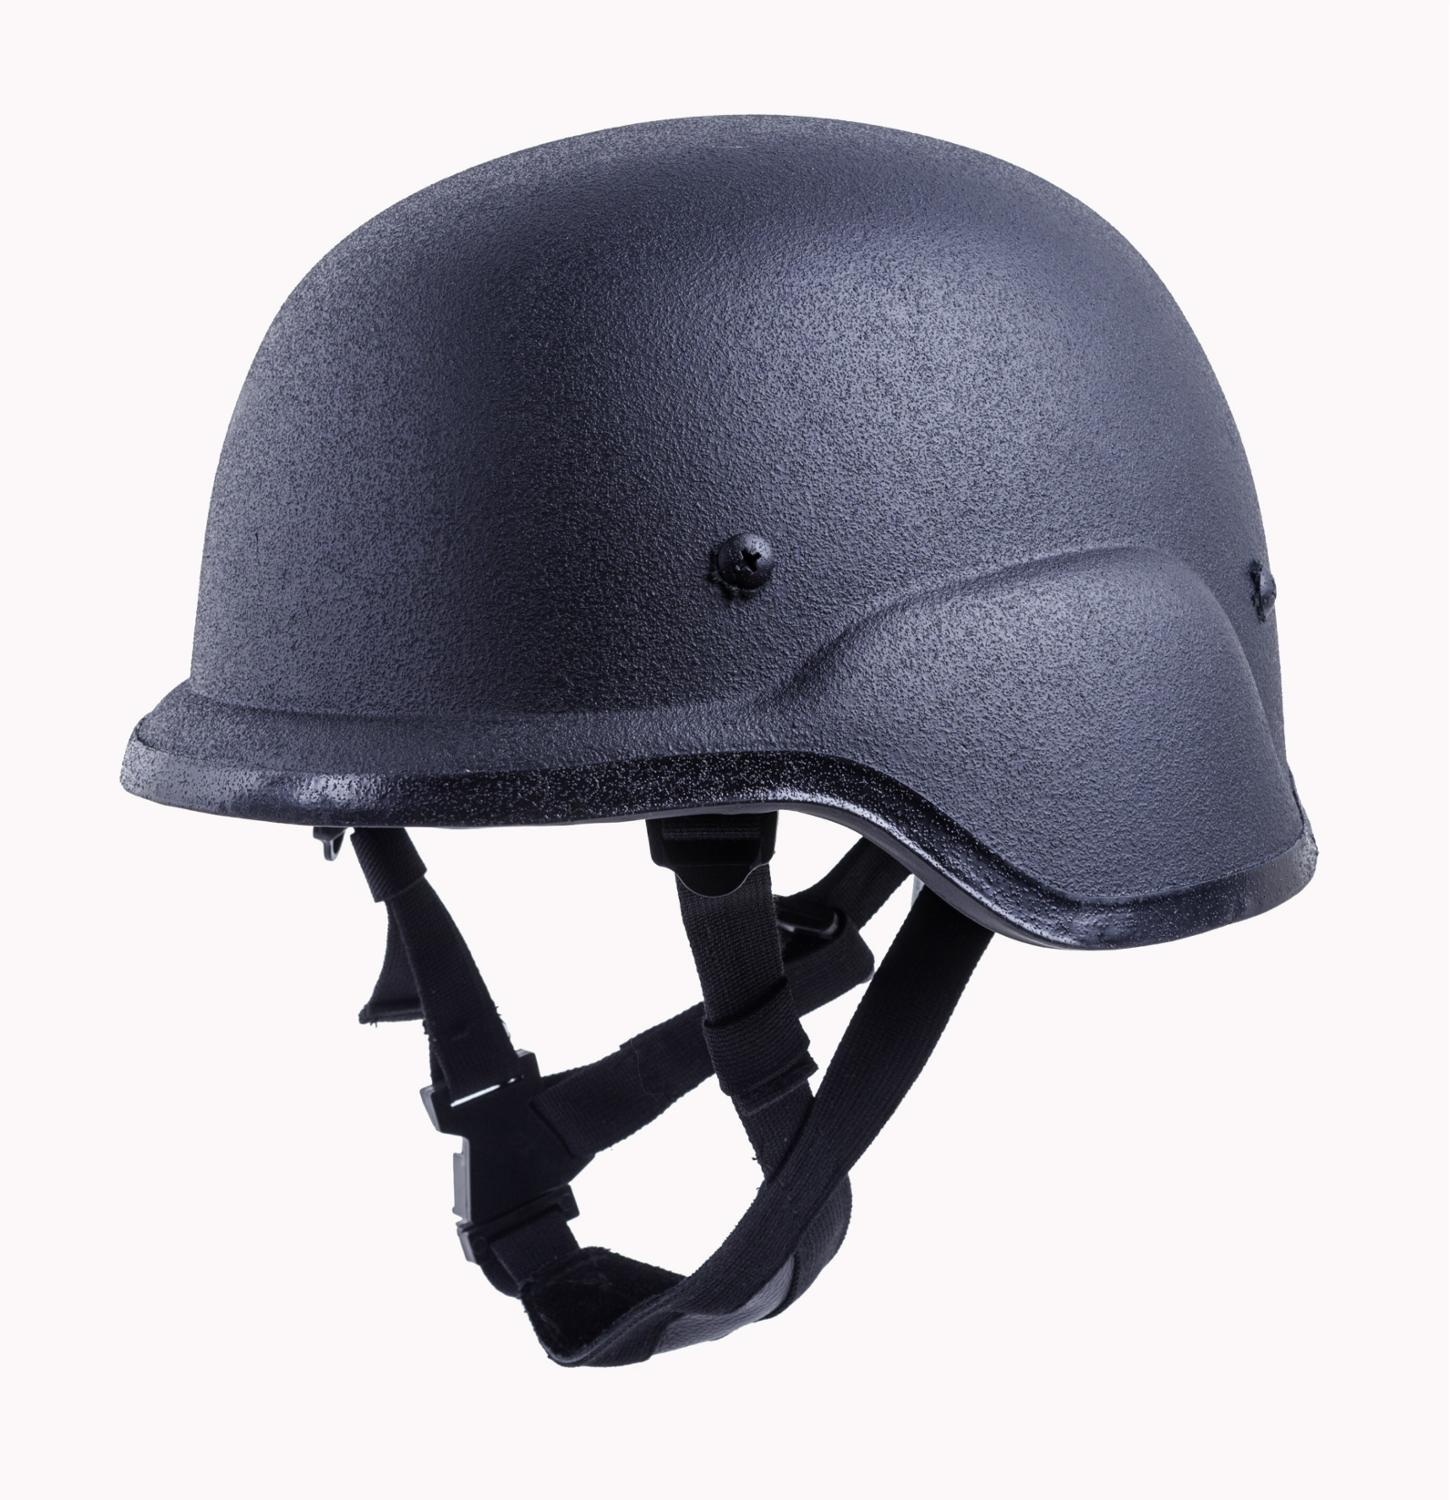 Anti May 4th Pistol 7.62mmpe Bullet Proof And Anti Riot Helmet Tactical Helmet Head Cover